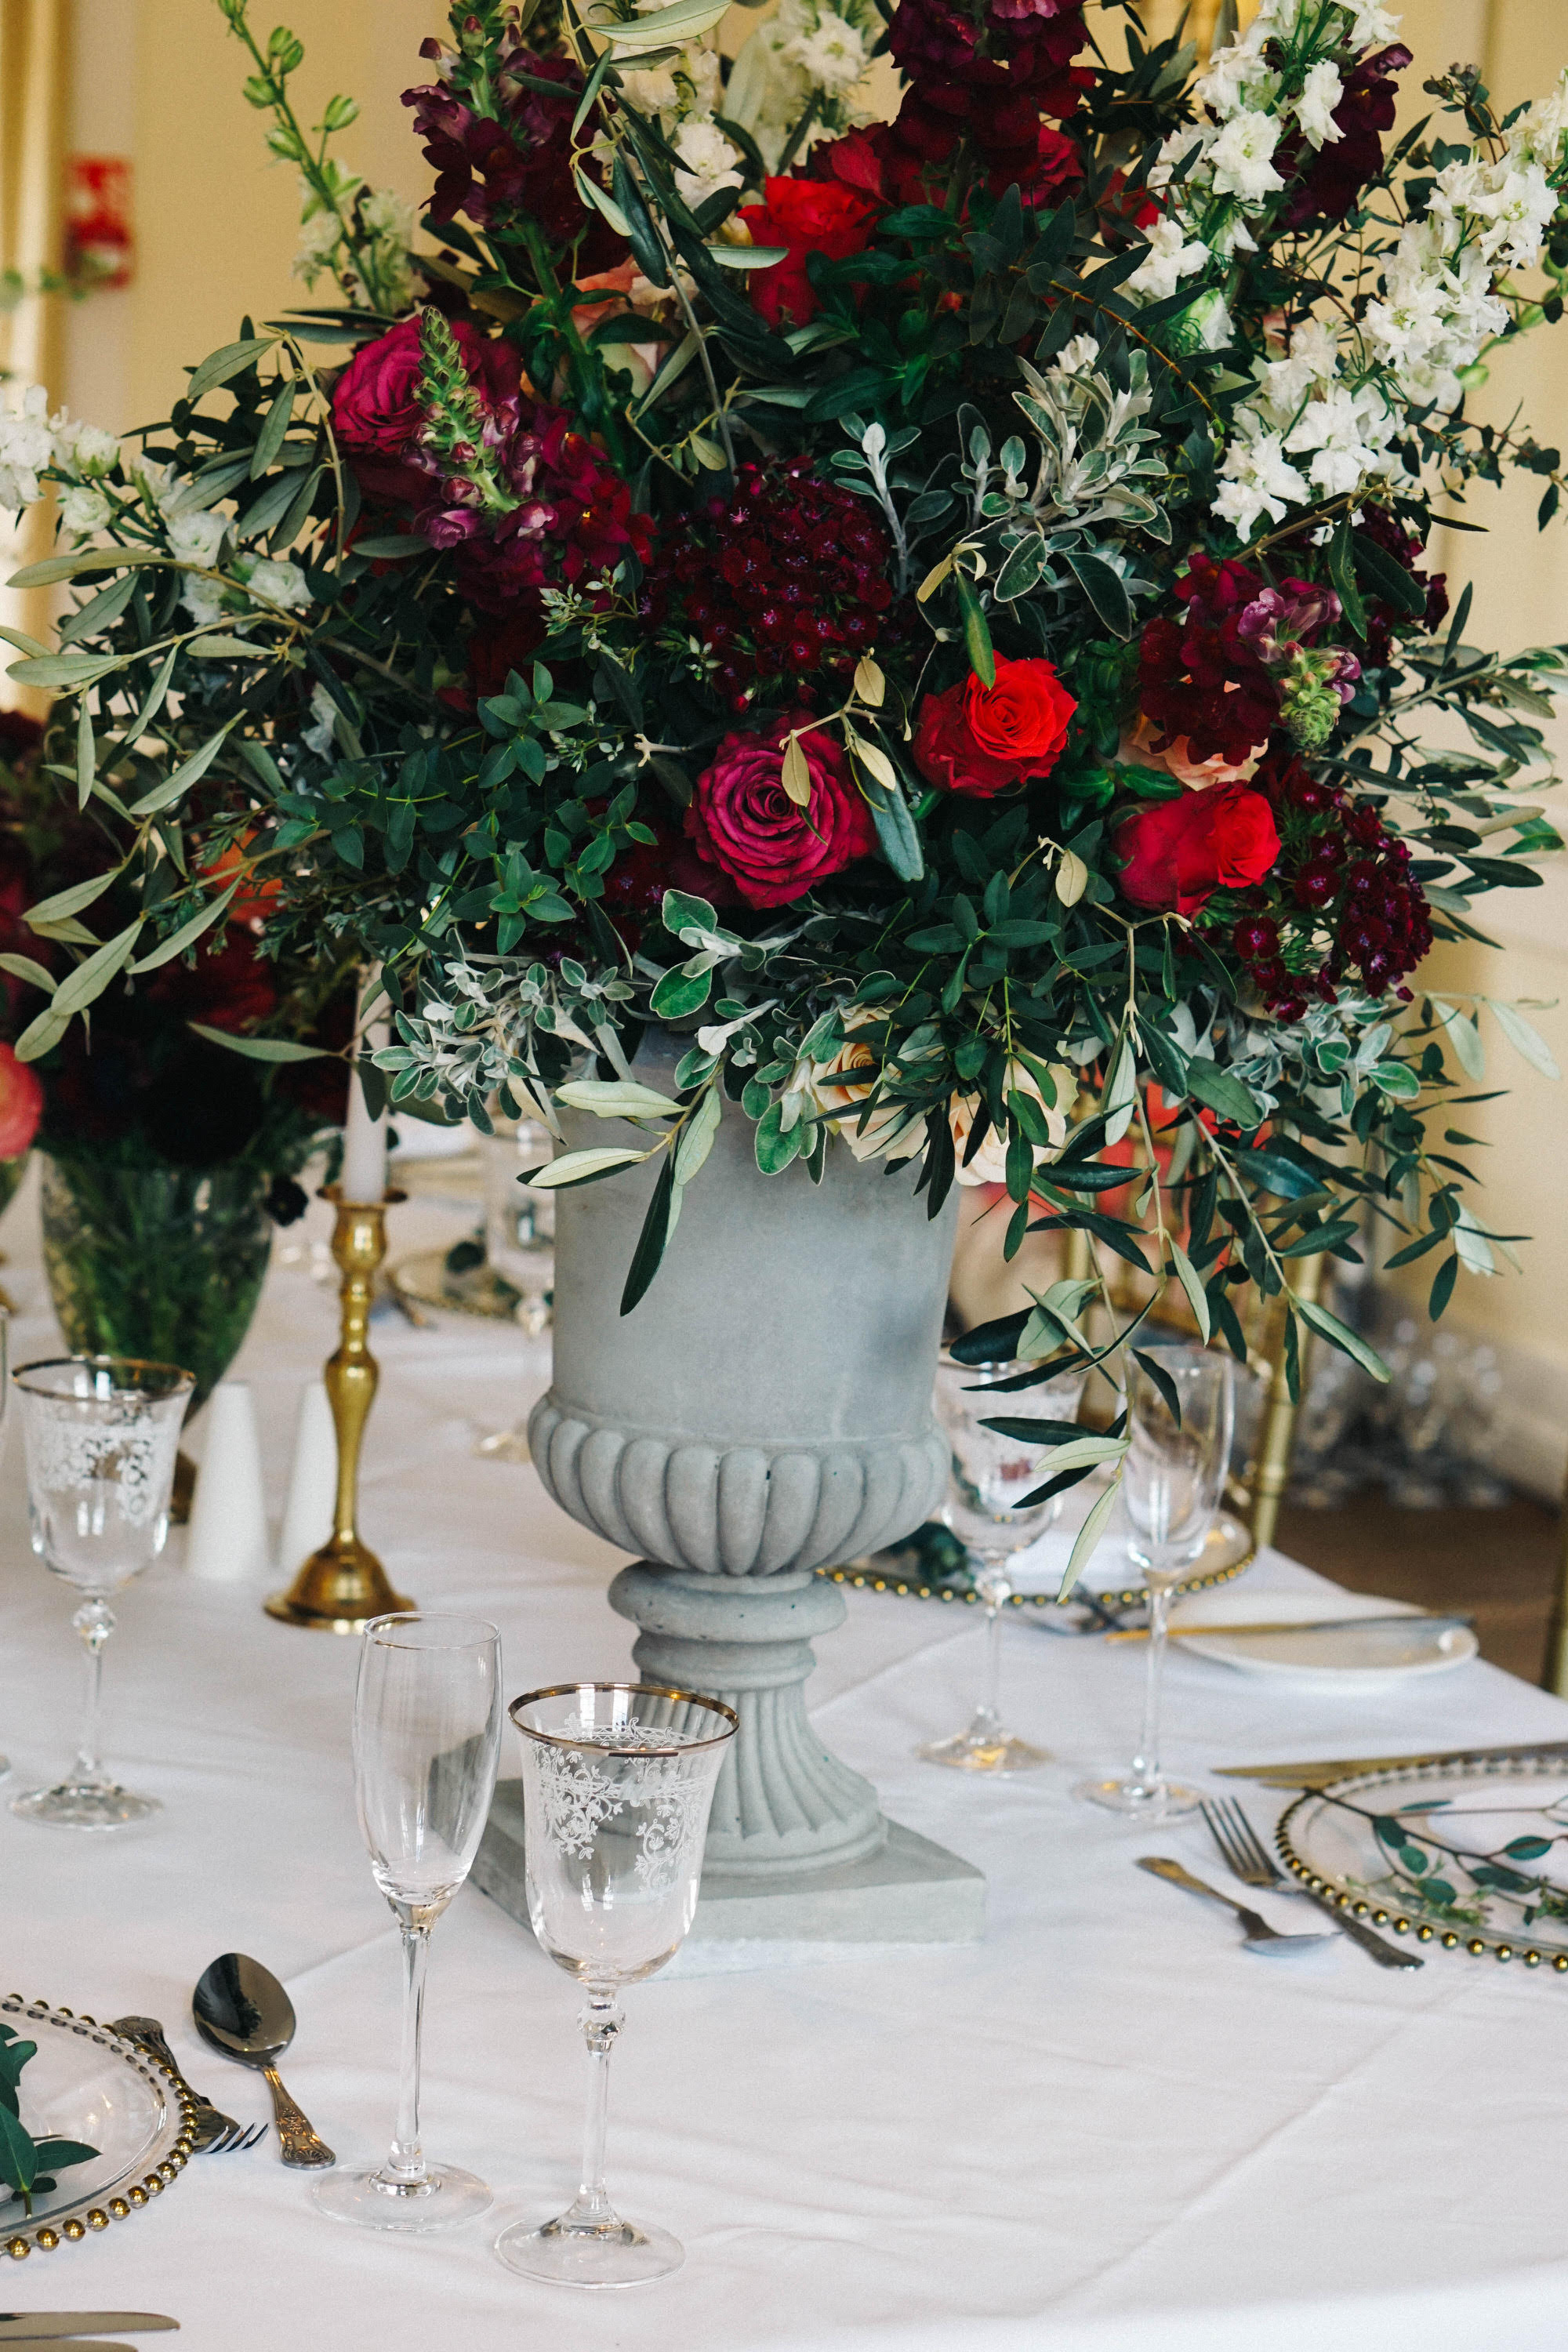 uk-green-red-rich-wedding-centerpiece-lily-lavender-events.jpg